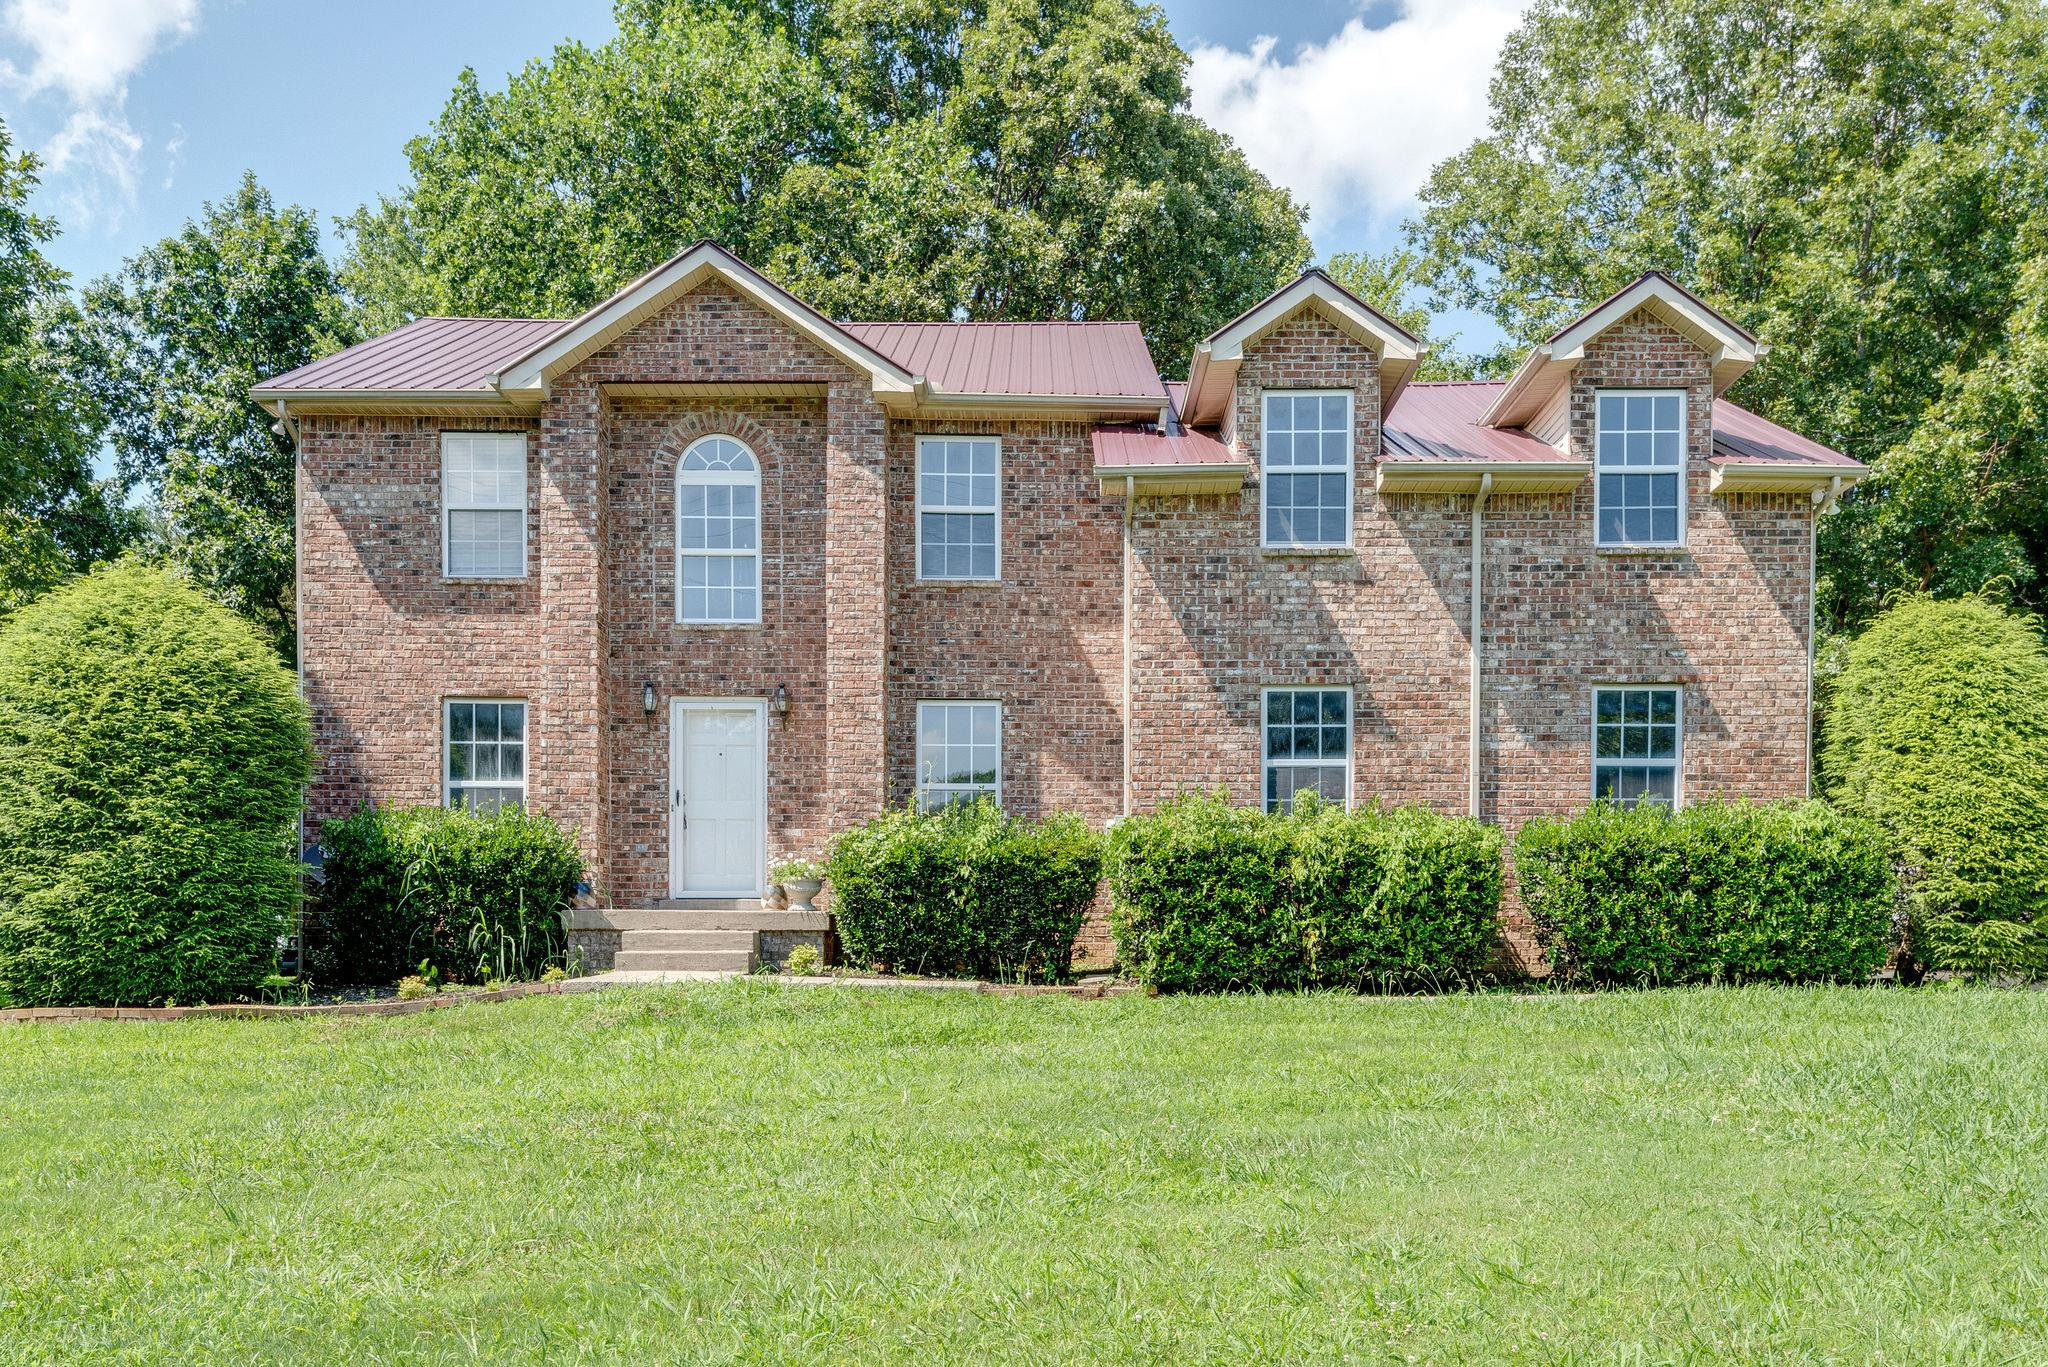 7522 Aubrey Ridge Dr, Fairview in Williamson County County, TN 37062 Home for Sale